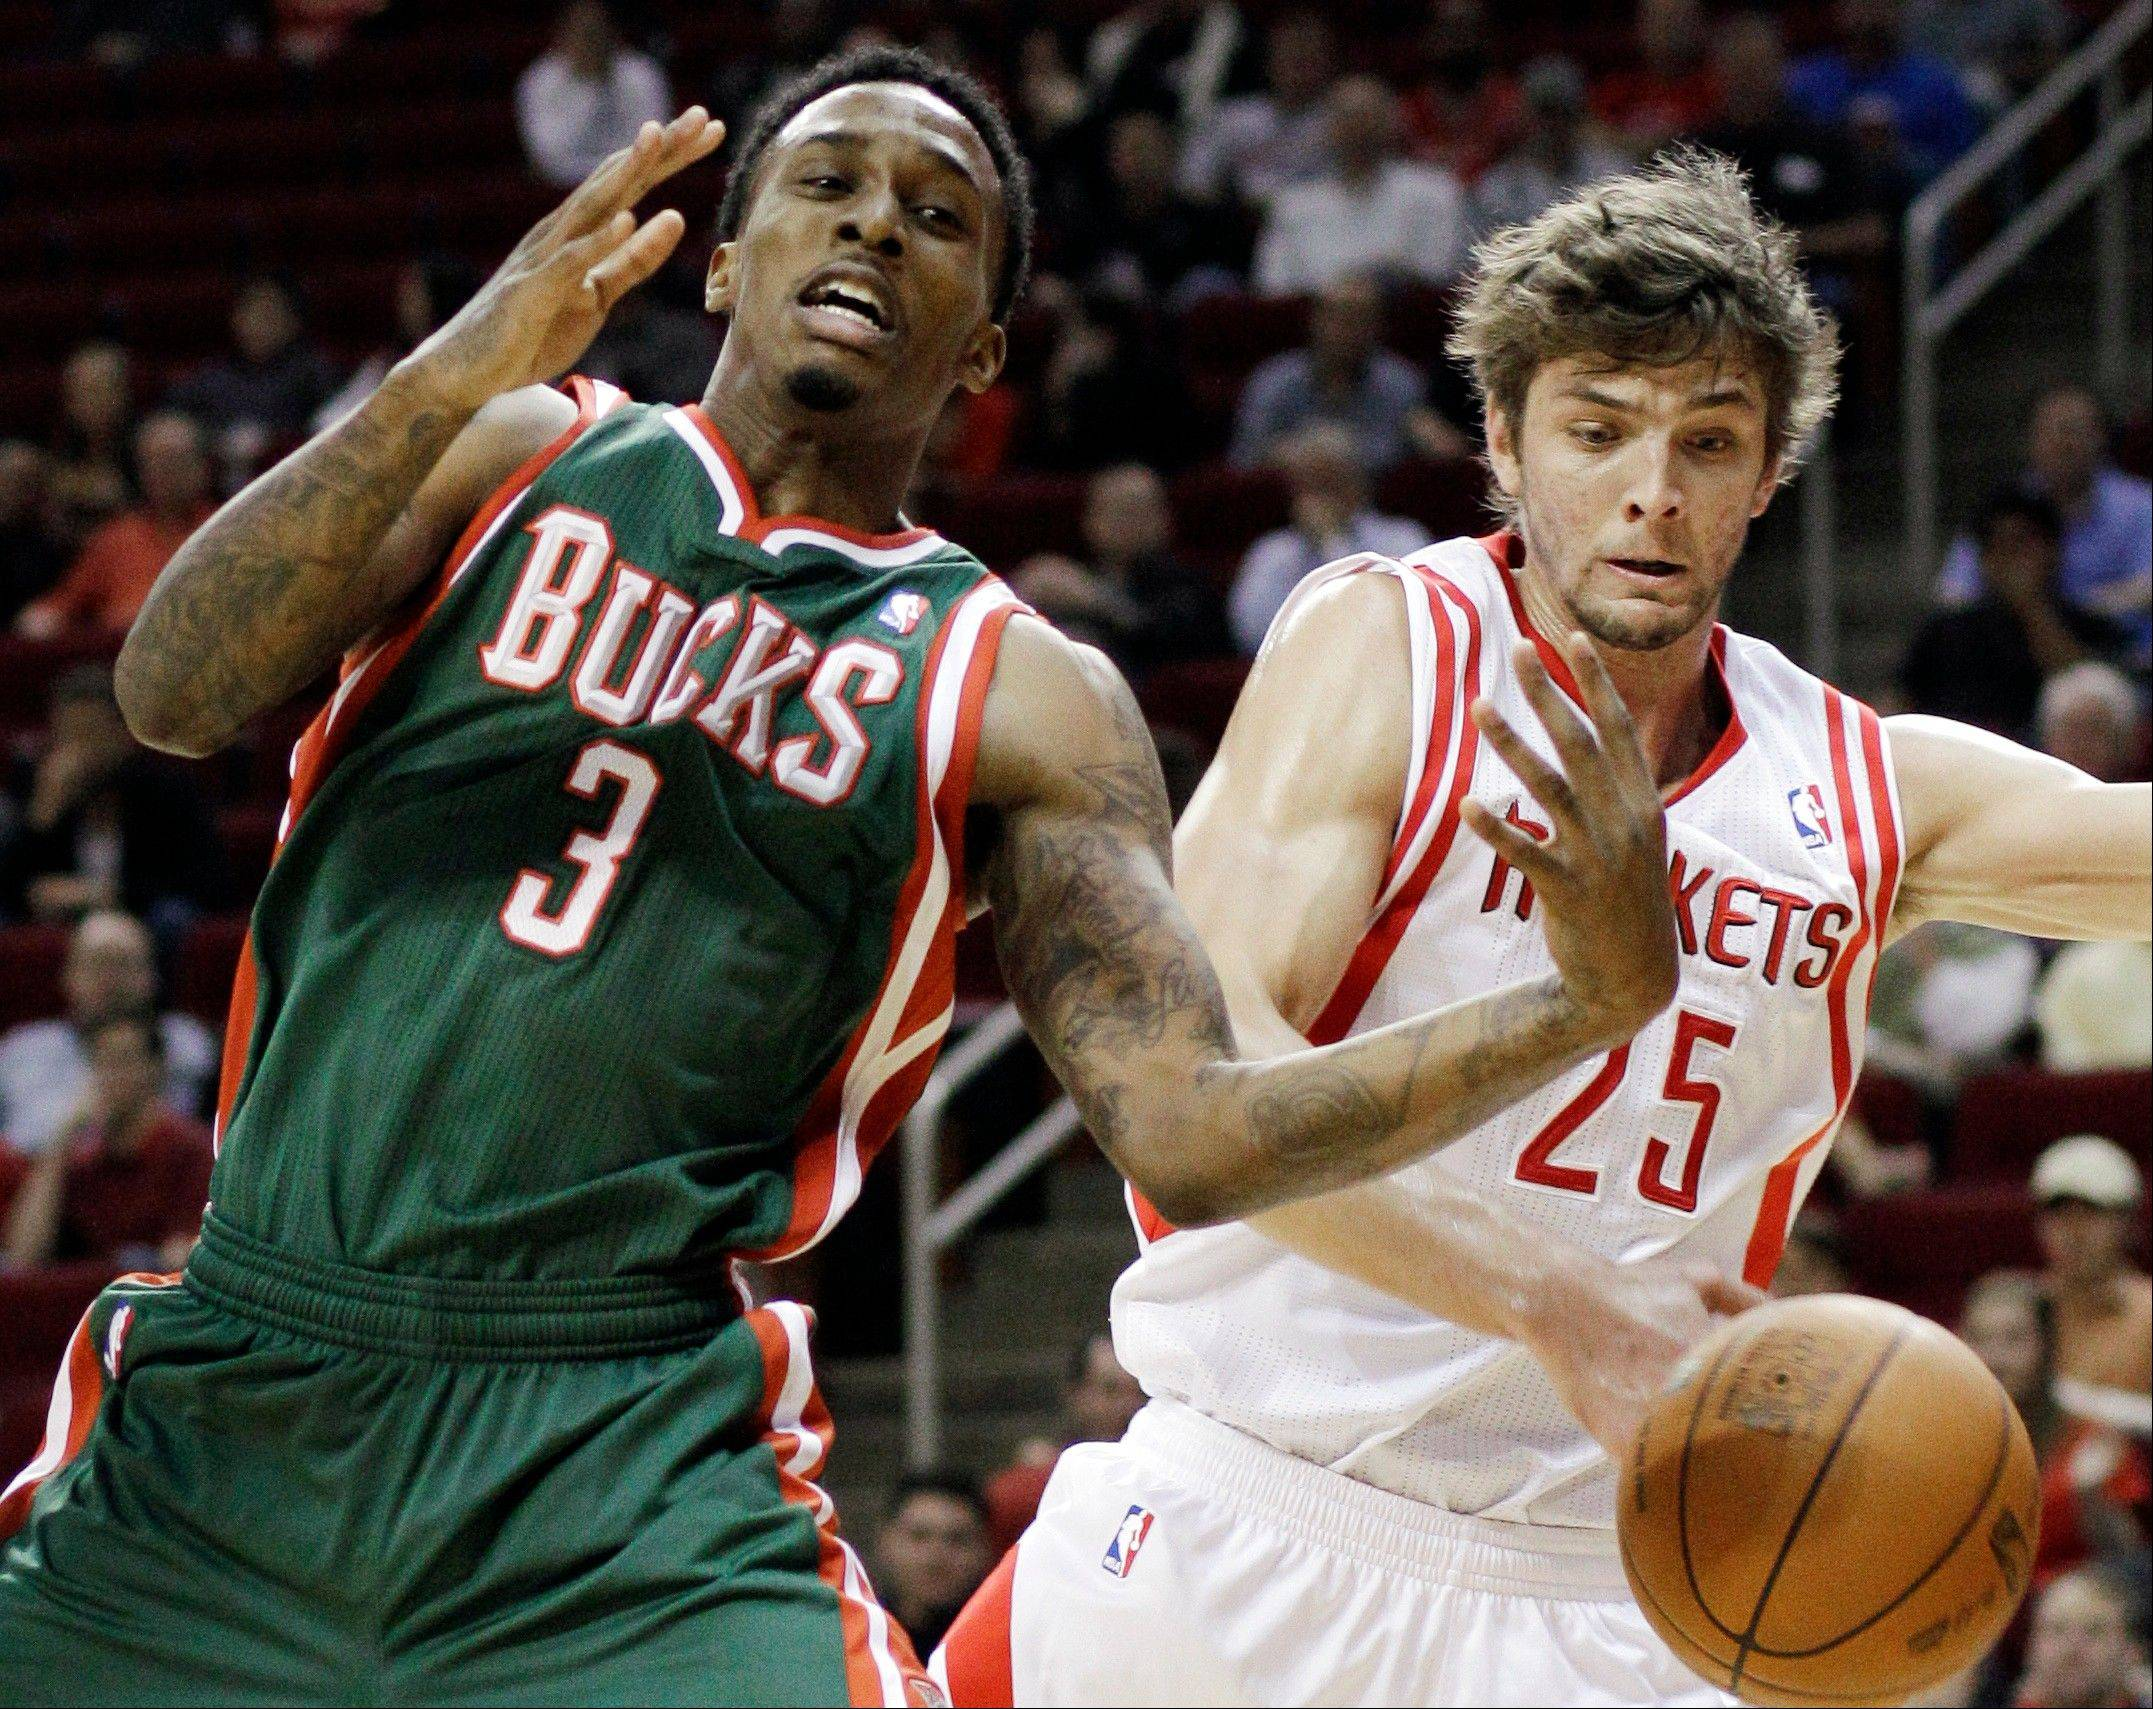 Stephen Jackson, Brandon Jennings lead Bucks over Rockets